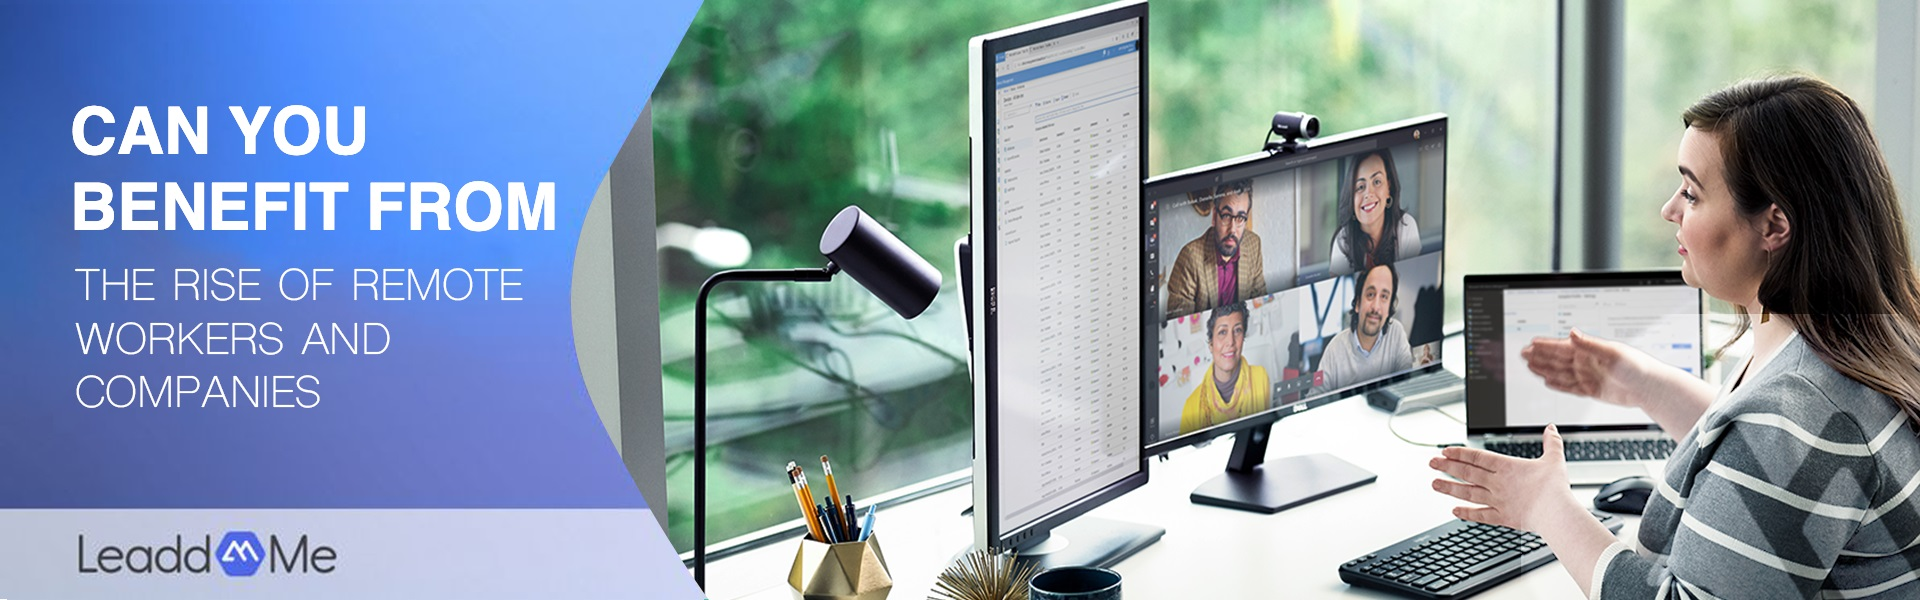 Can you benefit from the rise of remote workers and companies?